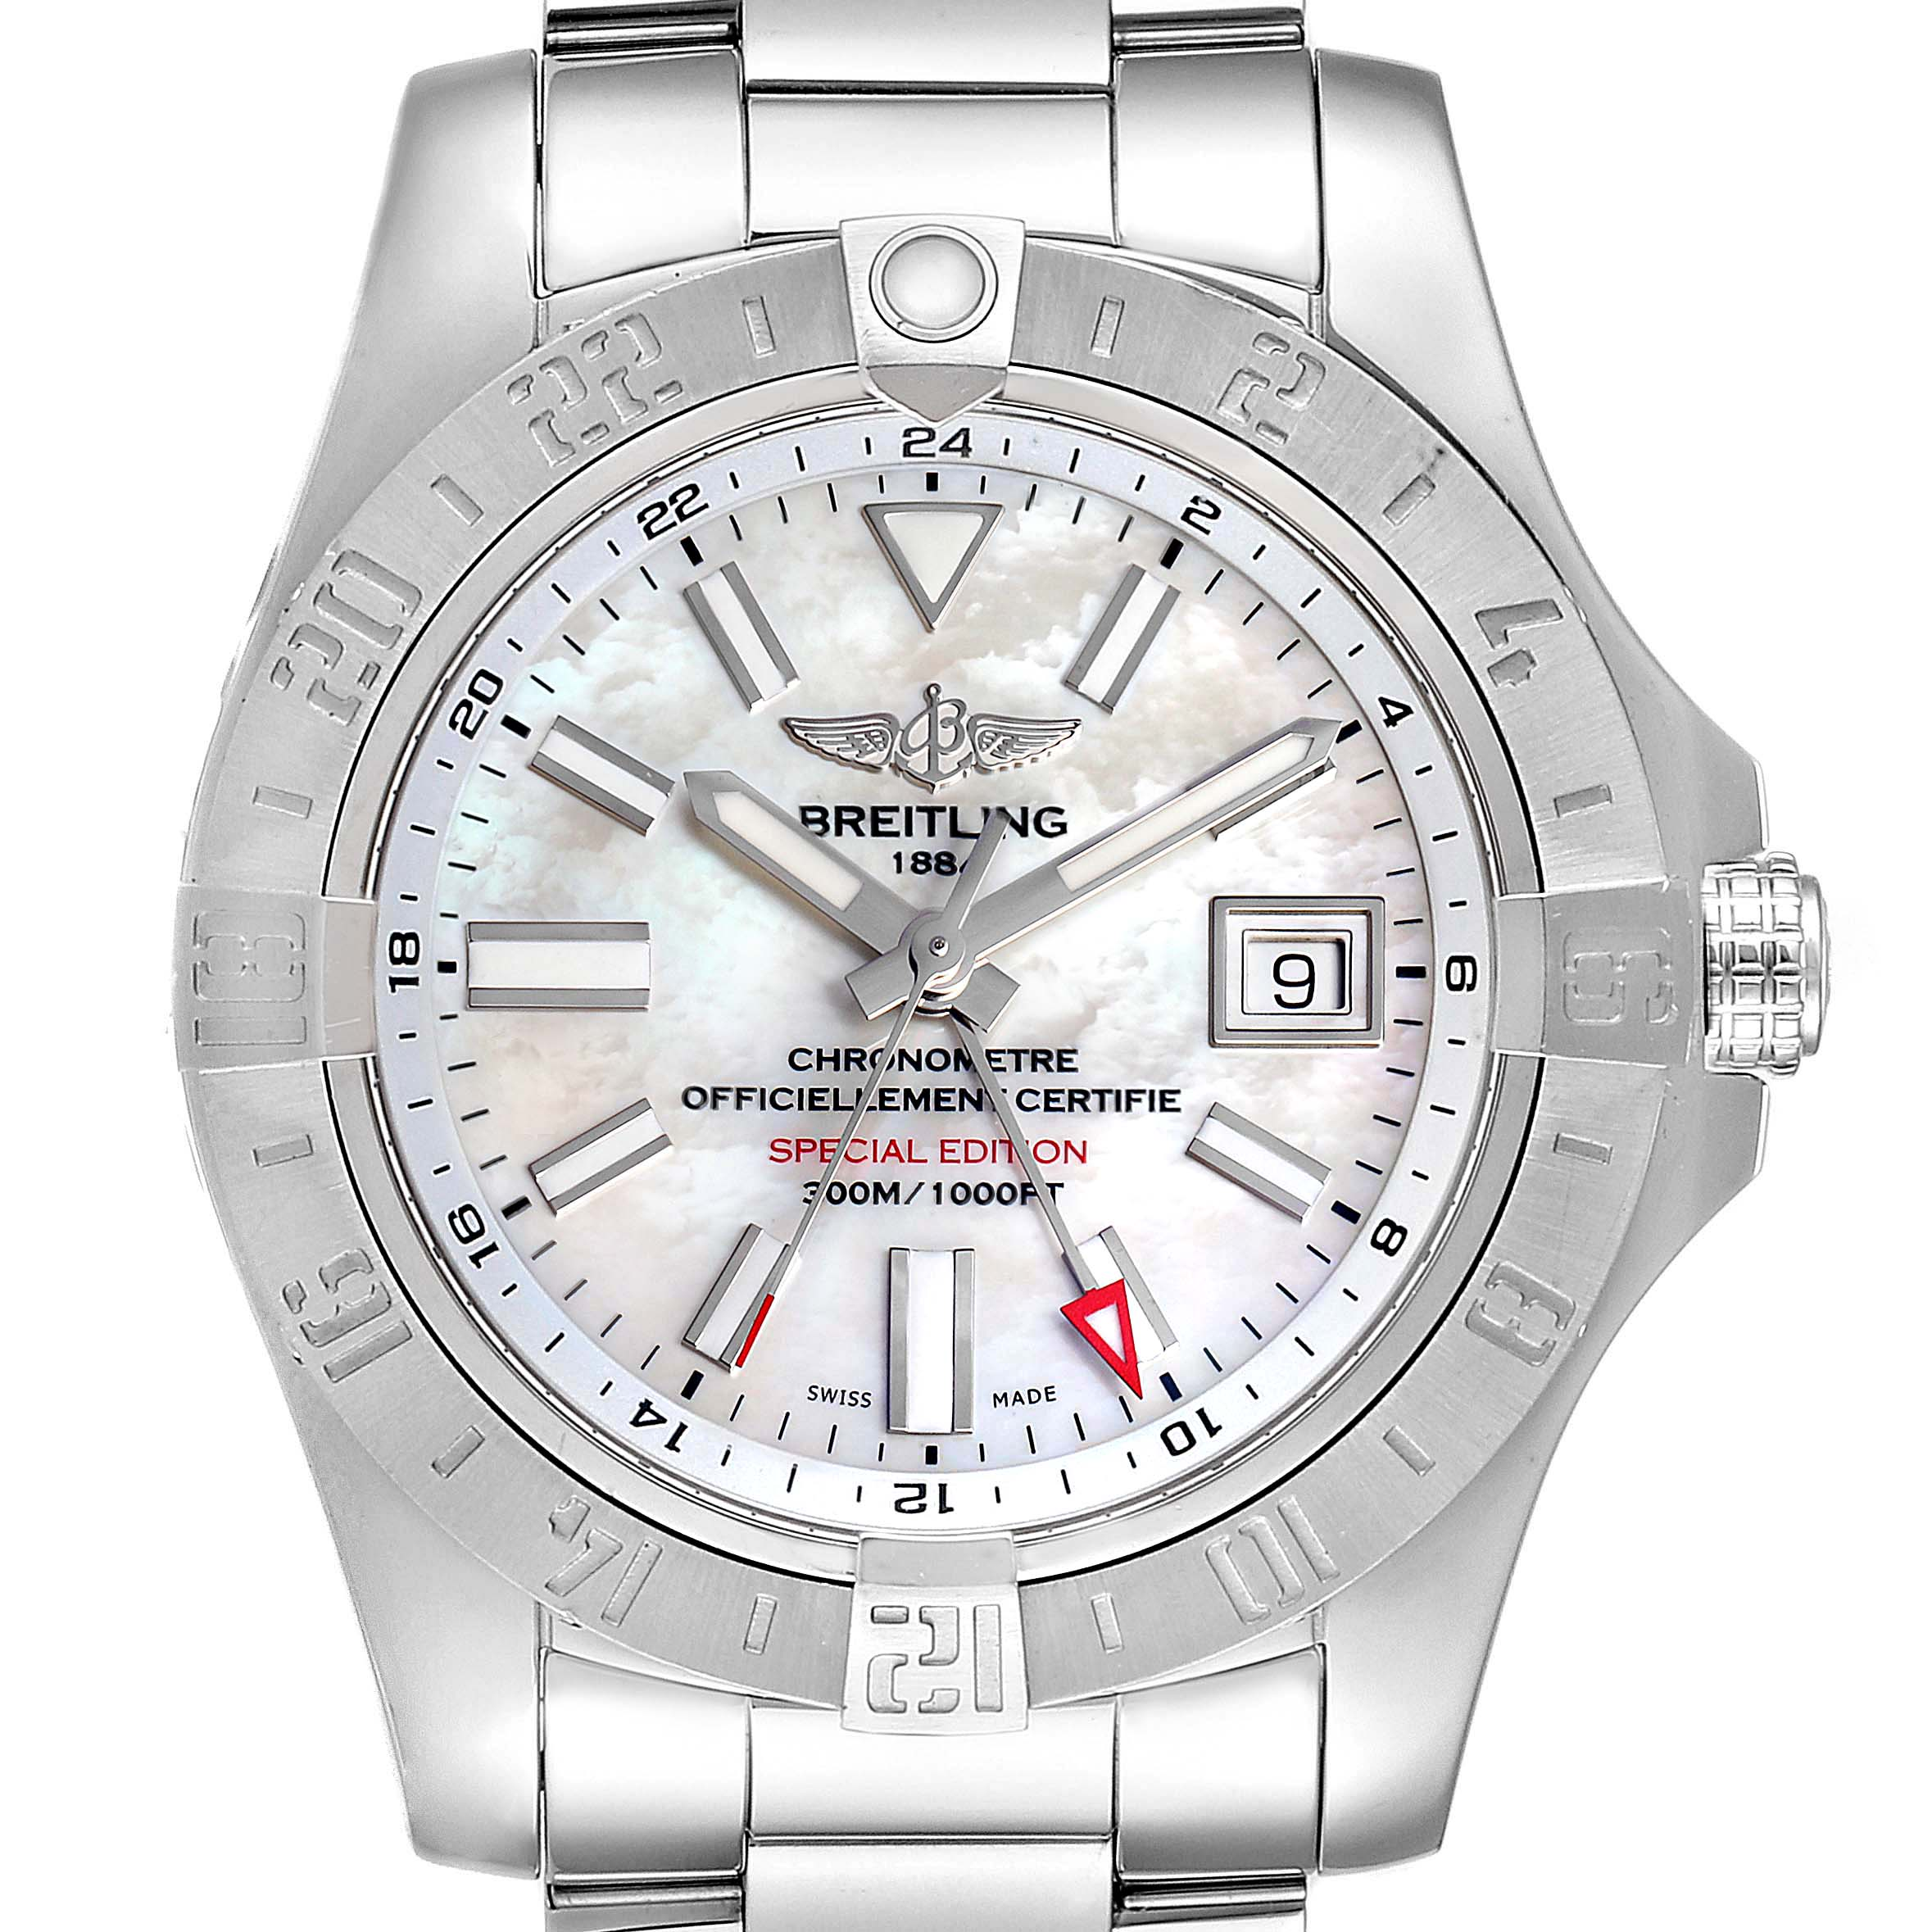 Breitling Aeromarine Avenger II GMT MOP Dial Watch A32390 Box Papers